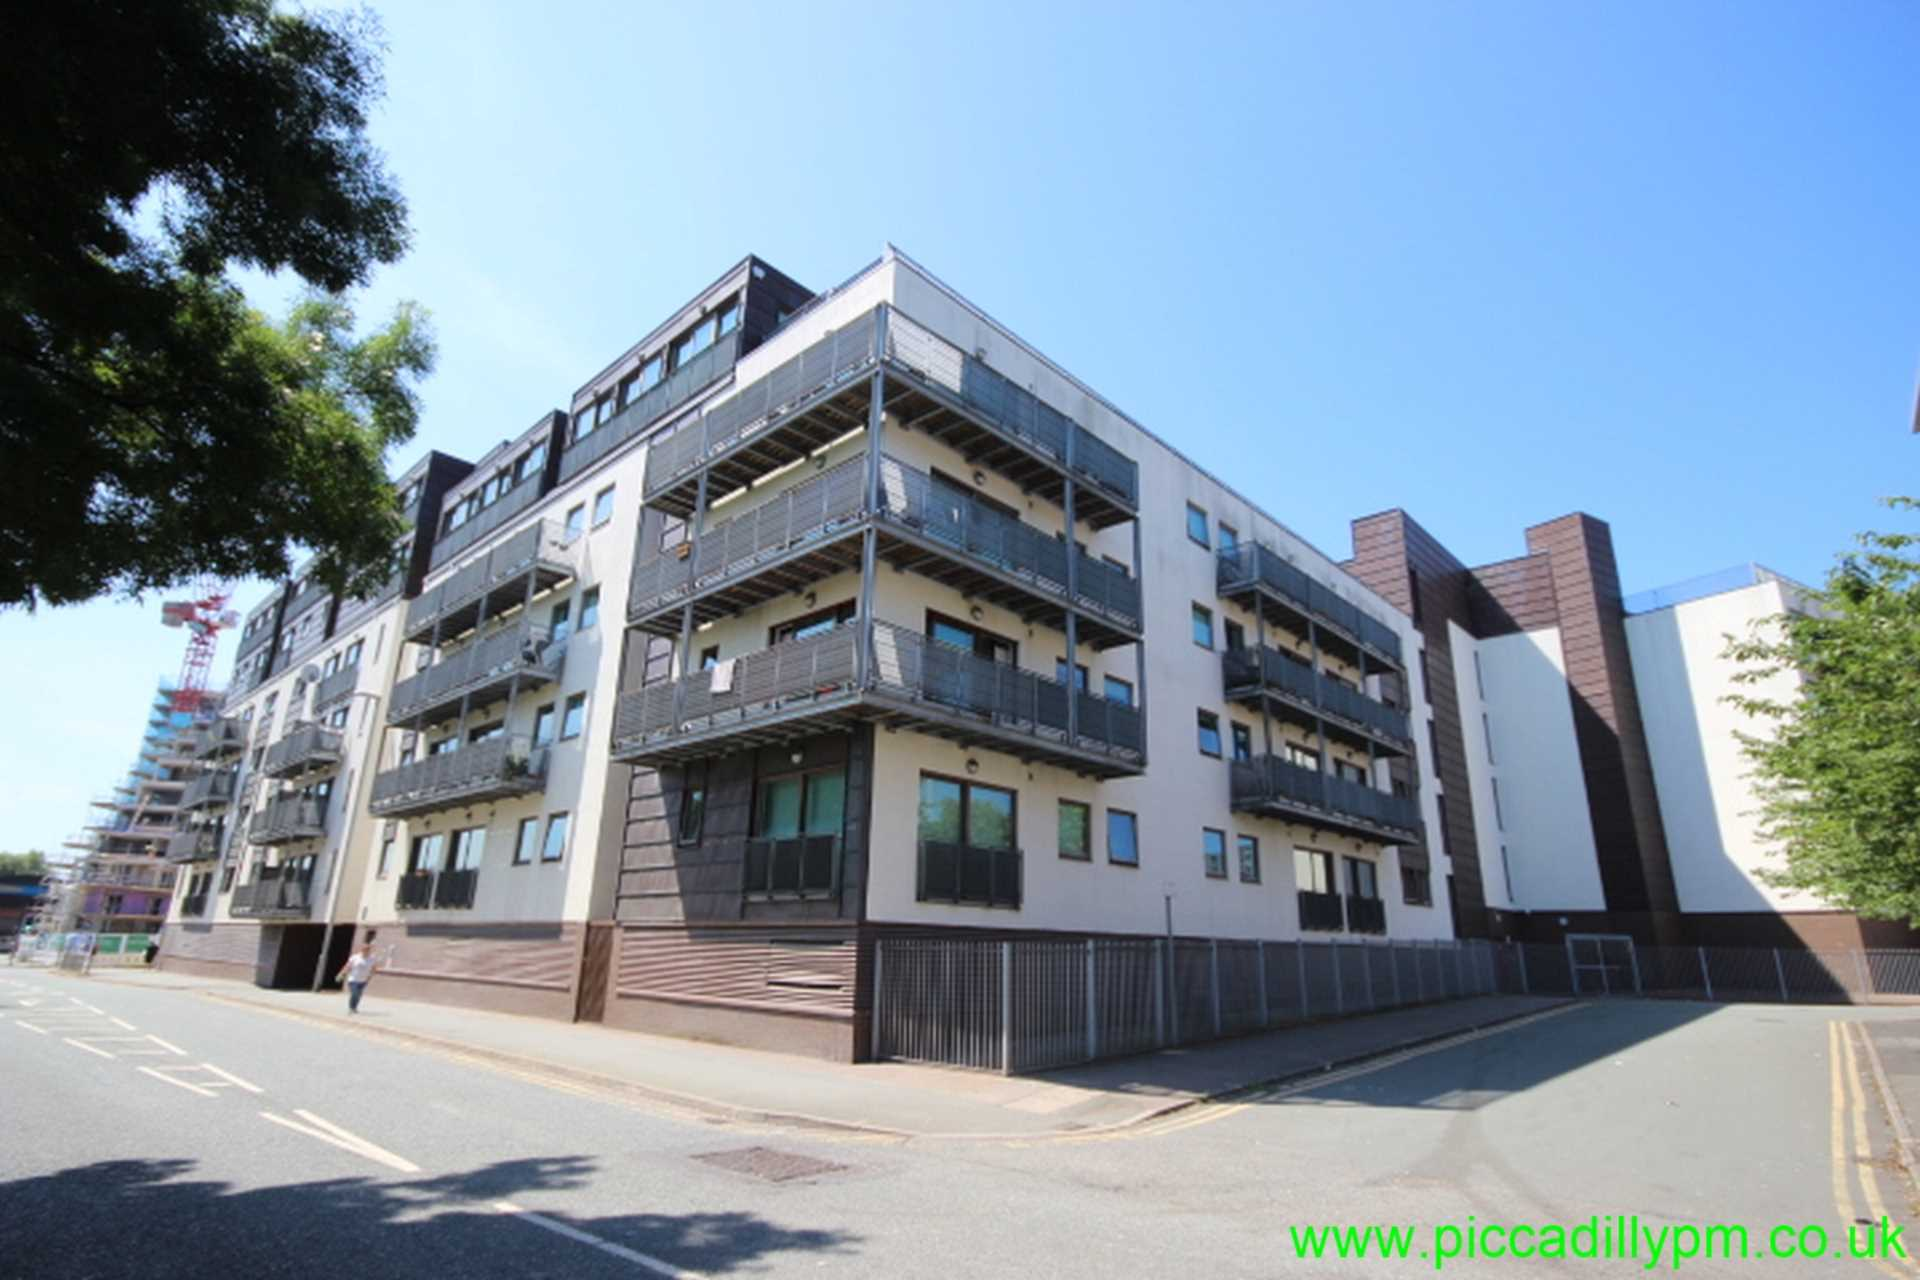 Piccadilly Property Management Ltd - 2 Bedroom Apartment, Advent 2/3, 1 Isaac Way, Ancoats